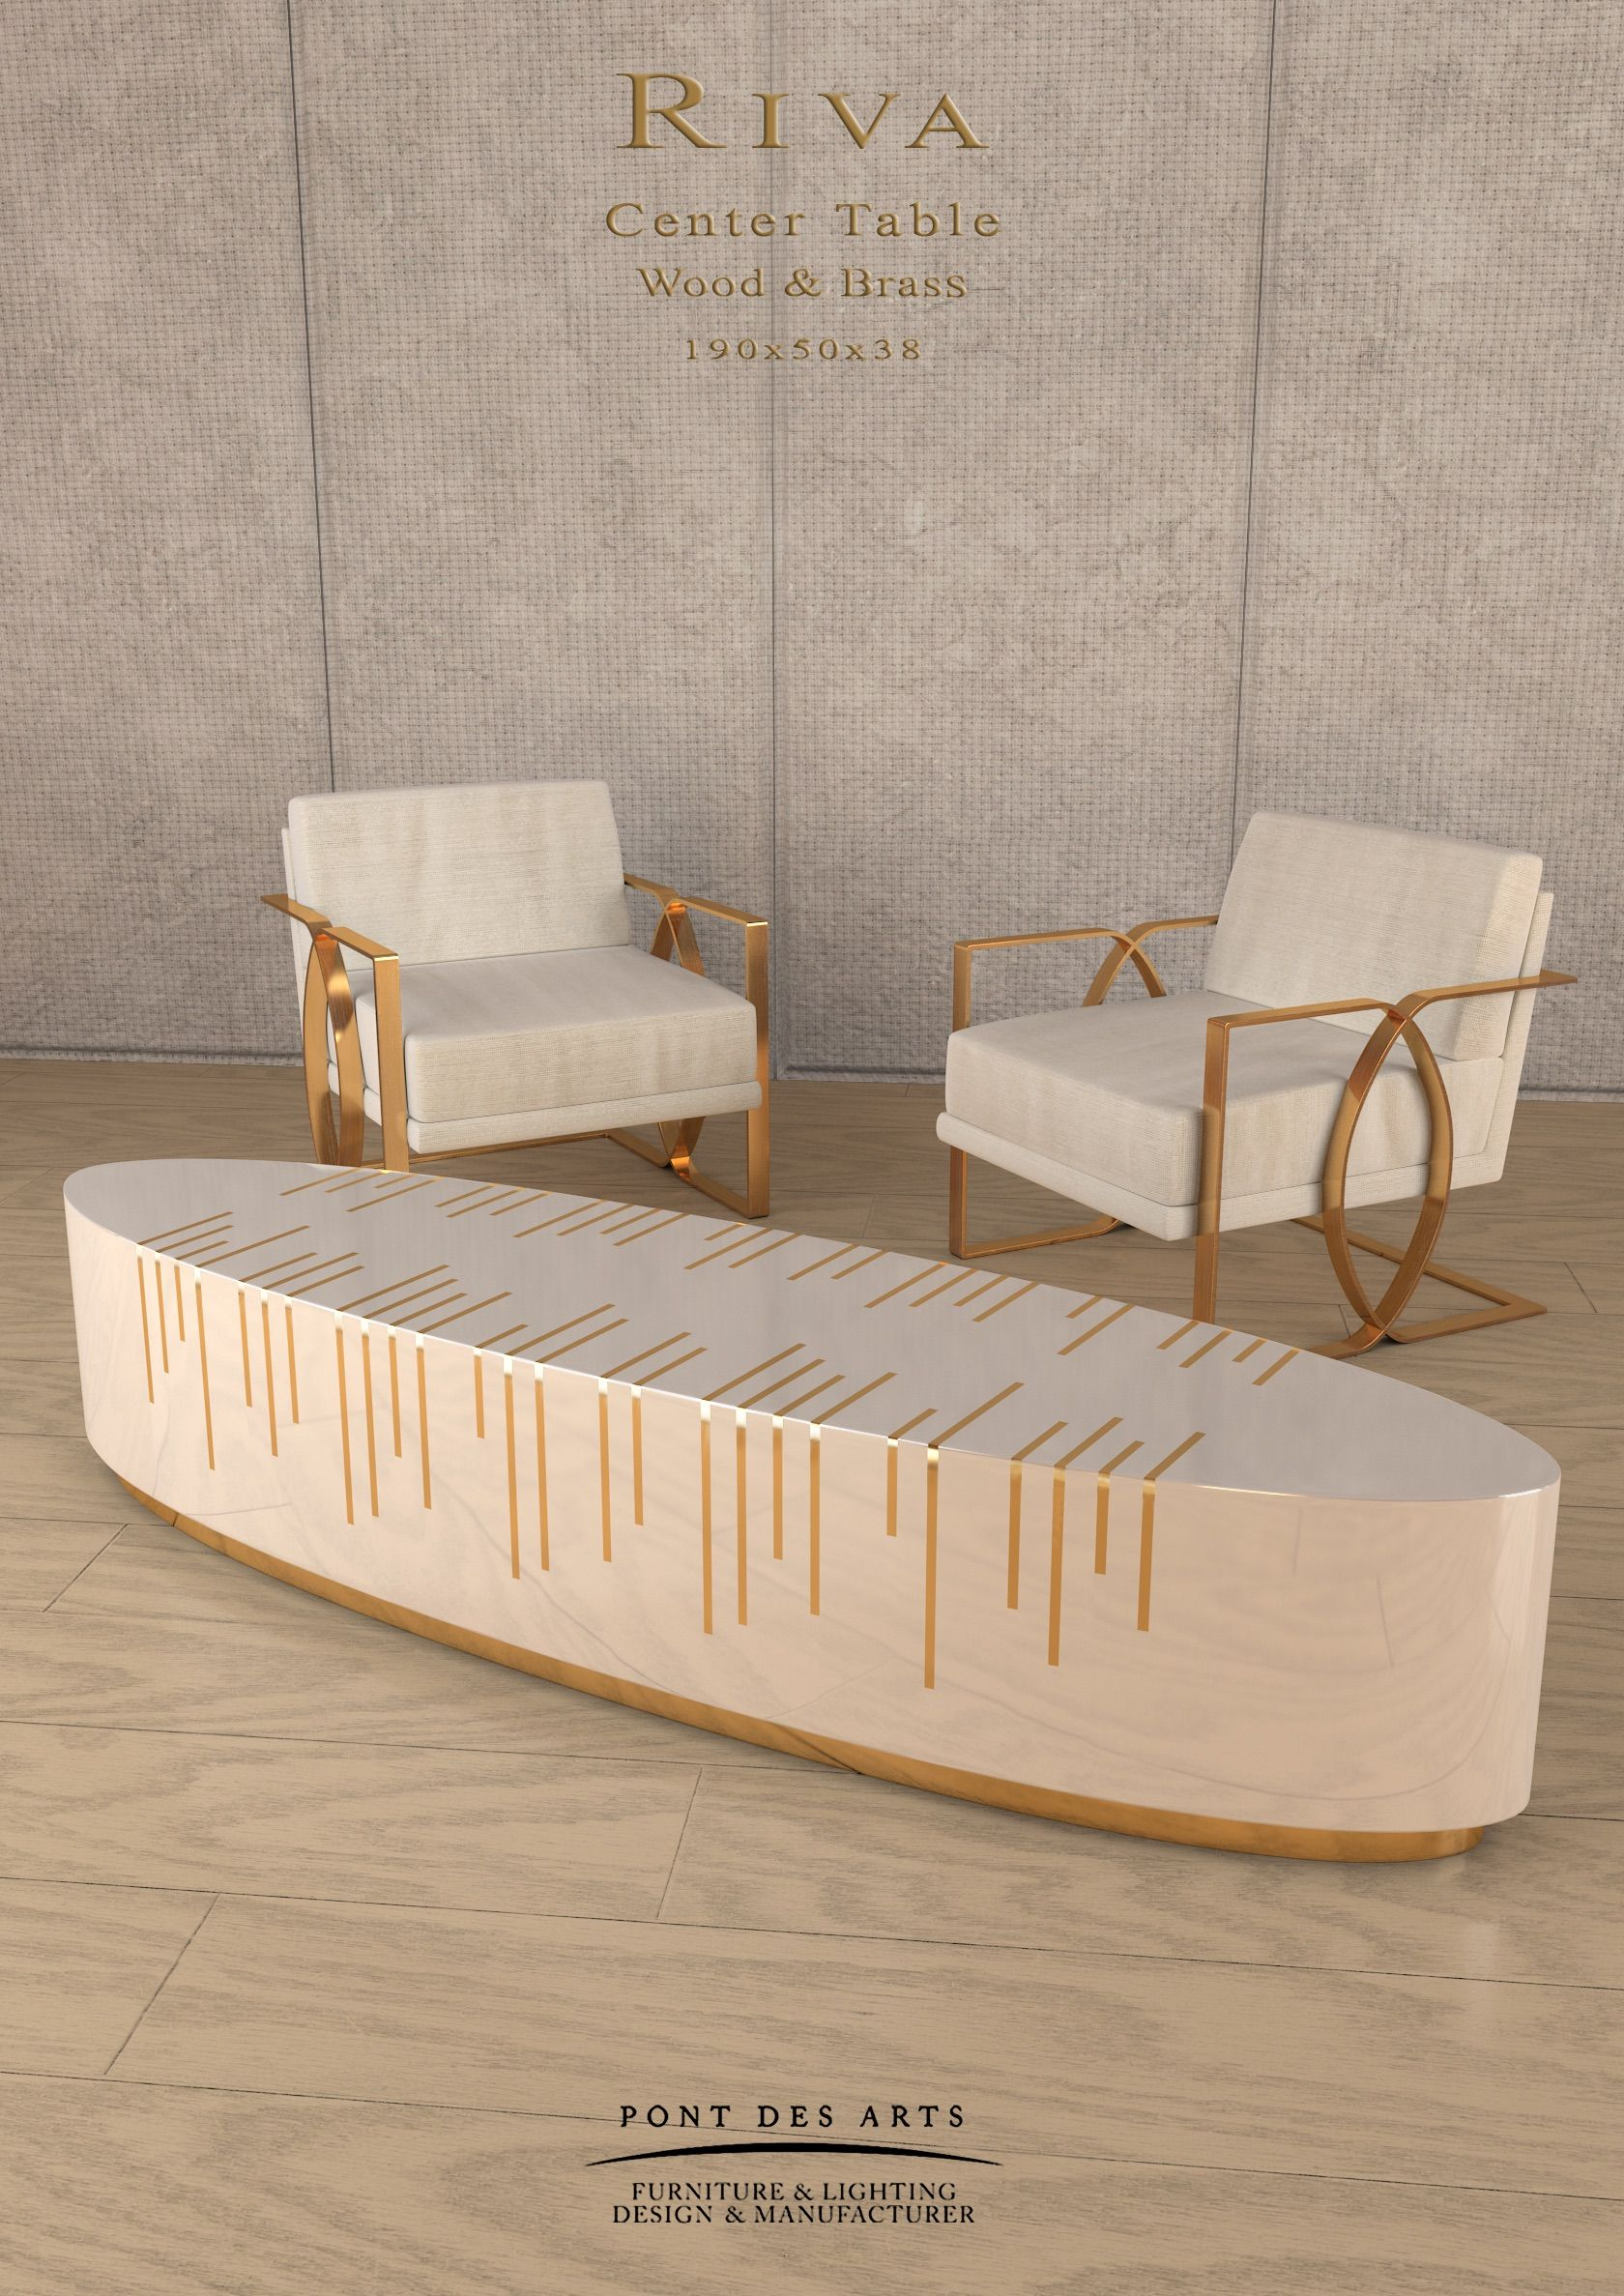 Centre Table Designs For Living Room: Studio Pont Des Arts _ Designer MONZER